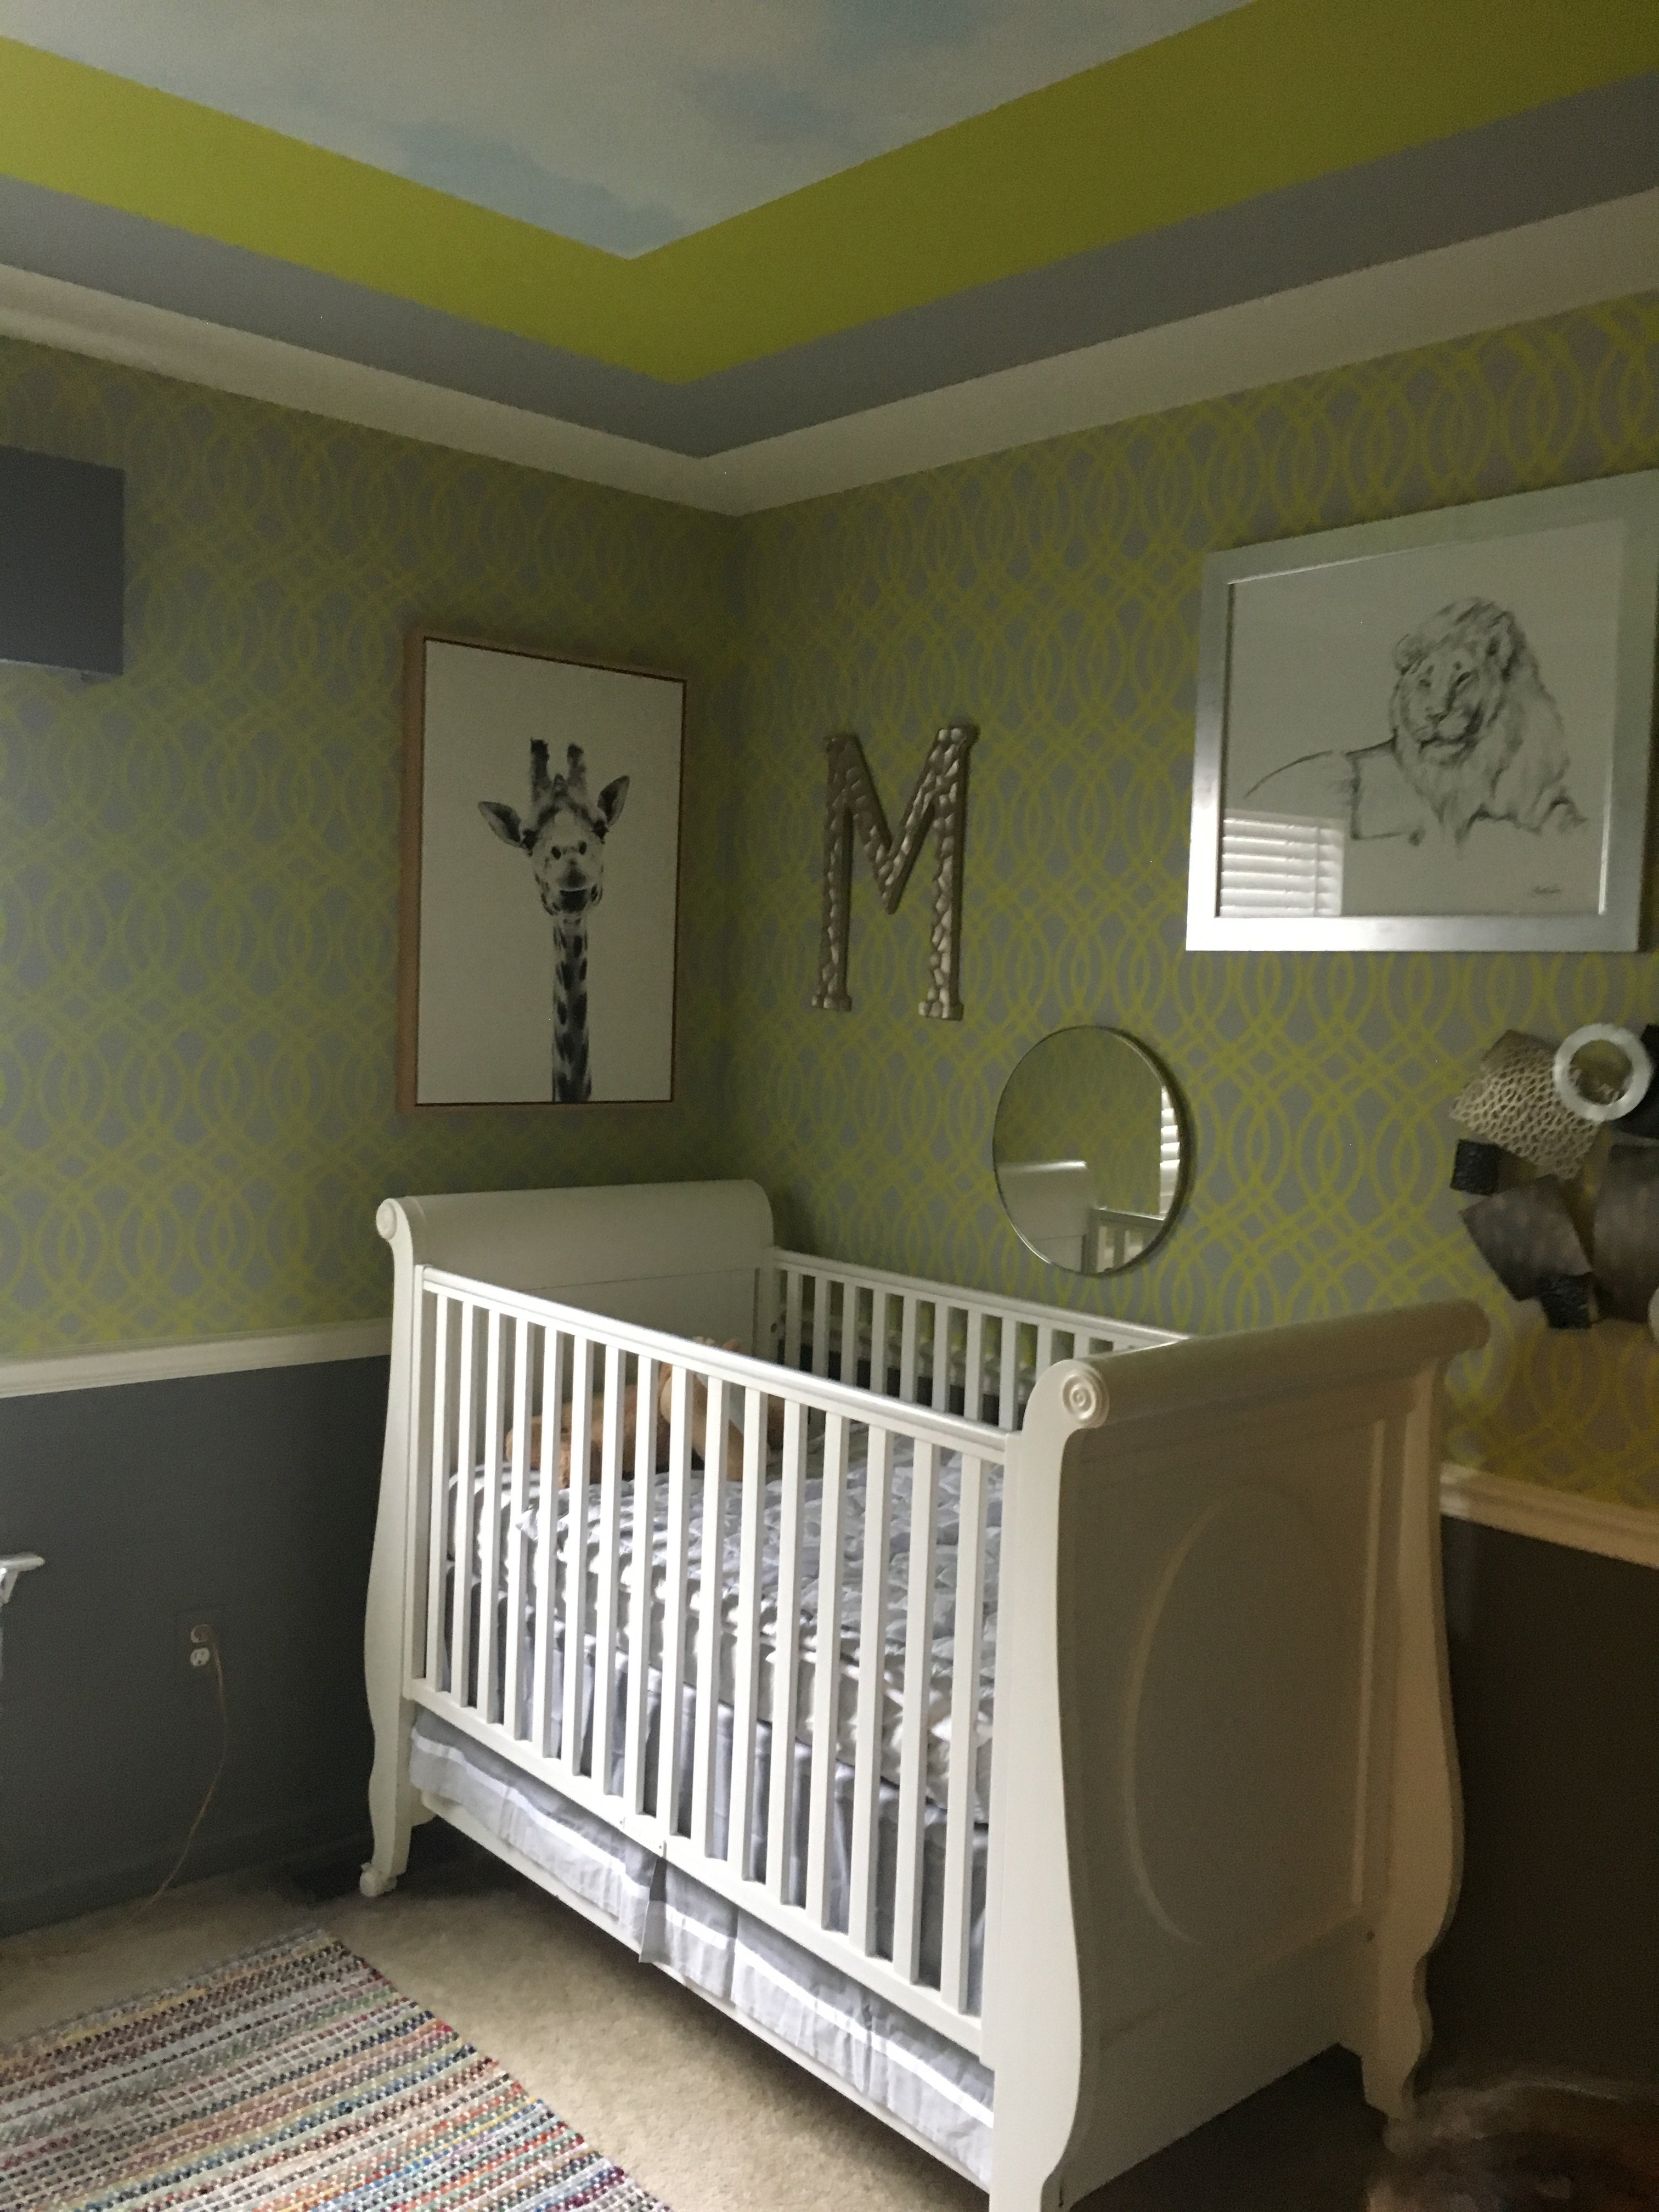 Miles bedroom is stenciled in a gray and chartreuse pattern.